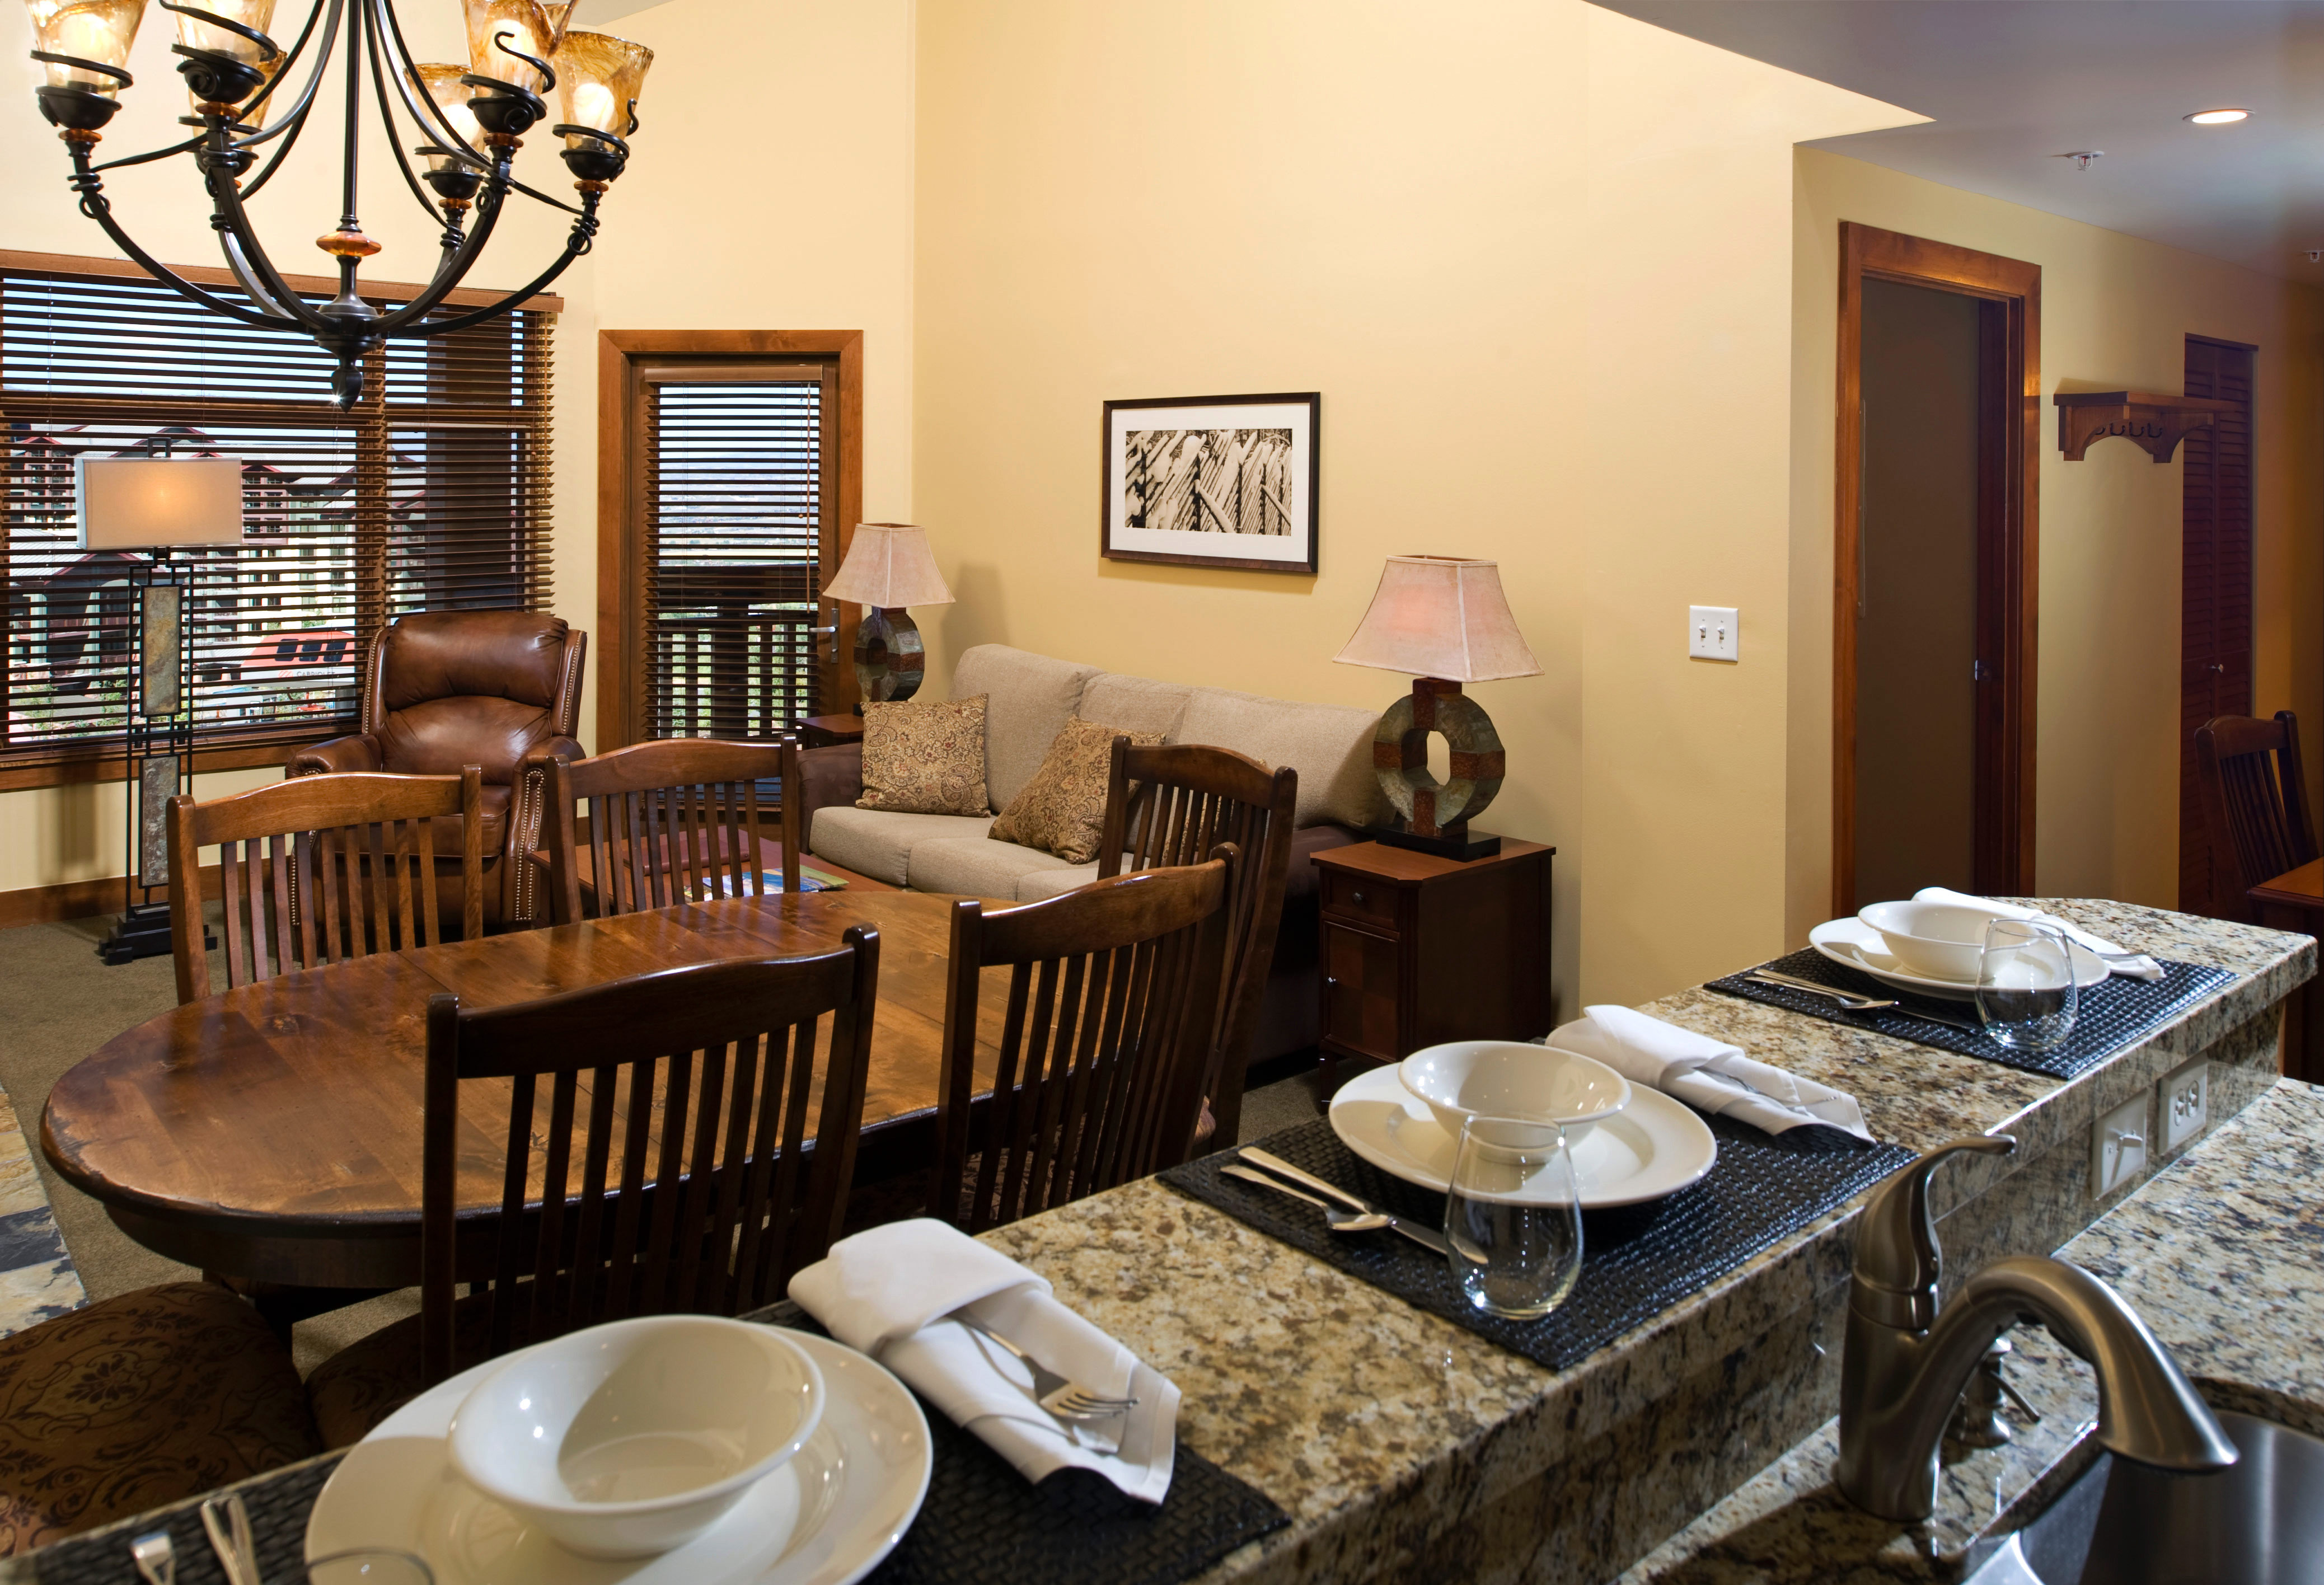 Family property restaurant living room home cottage Dining Villa Suite dining table